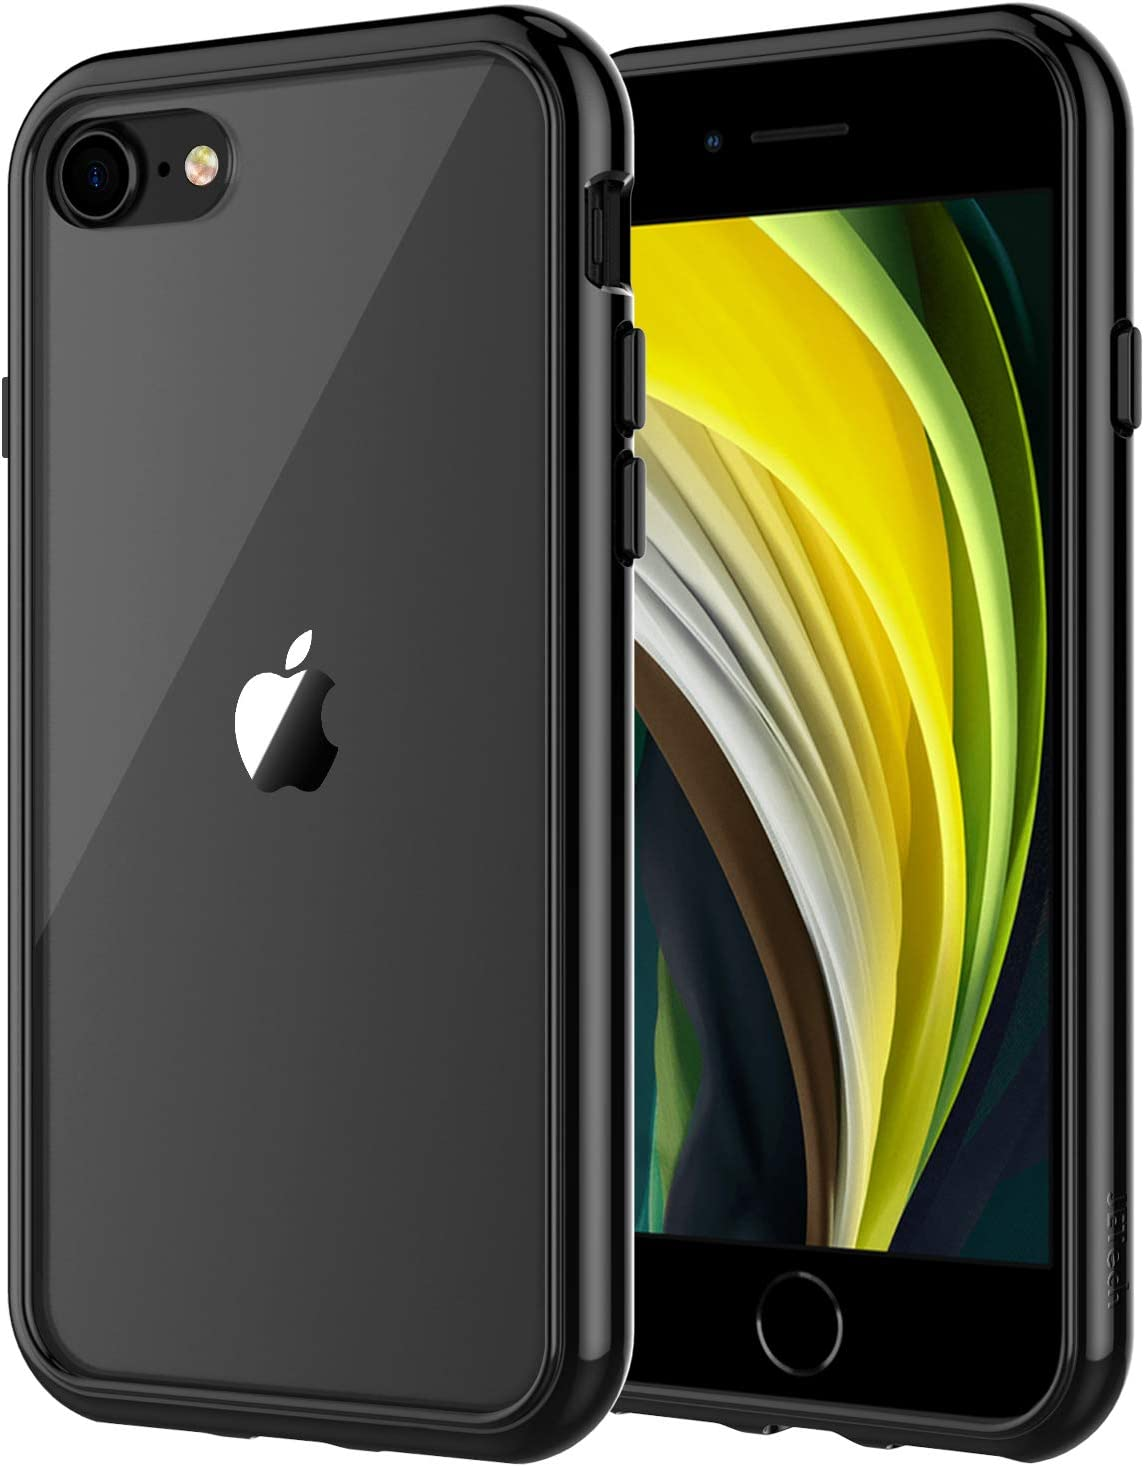 JETech Funda Compatible Apple iPhone SE 2ª Generación, iPhone 8 iPhone 7, Anti- Choques y Anti- Arañazos, Negro